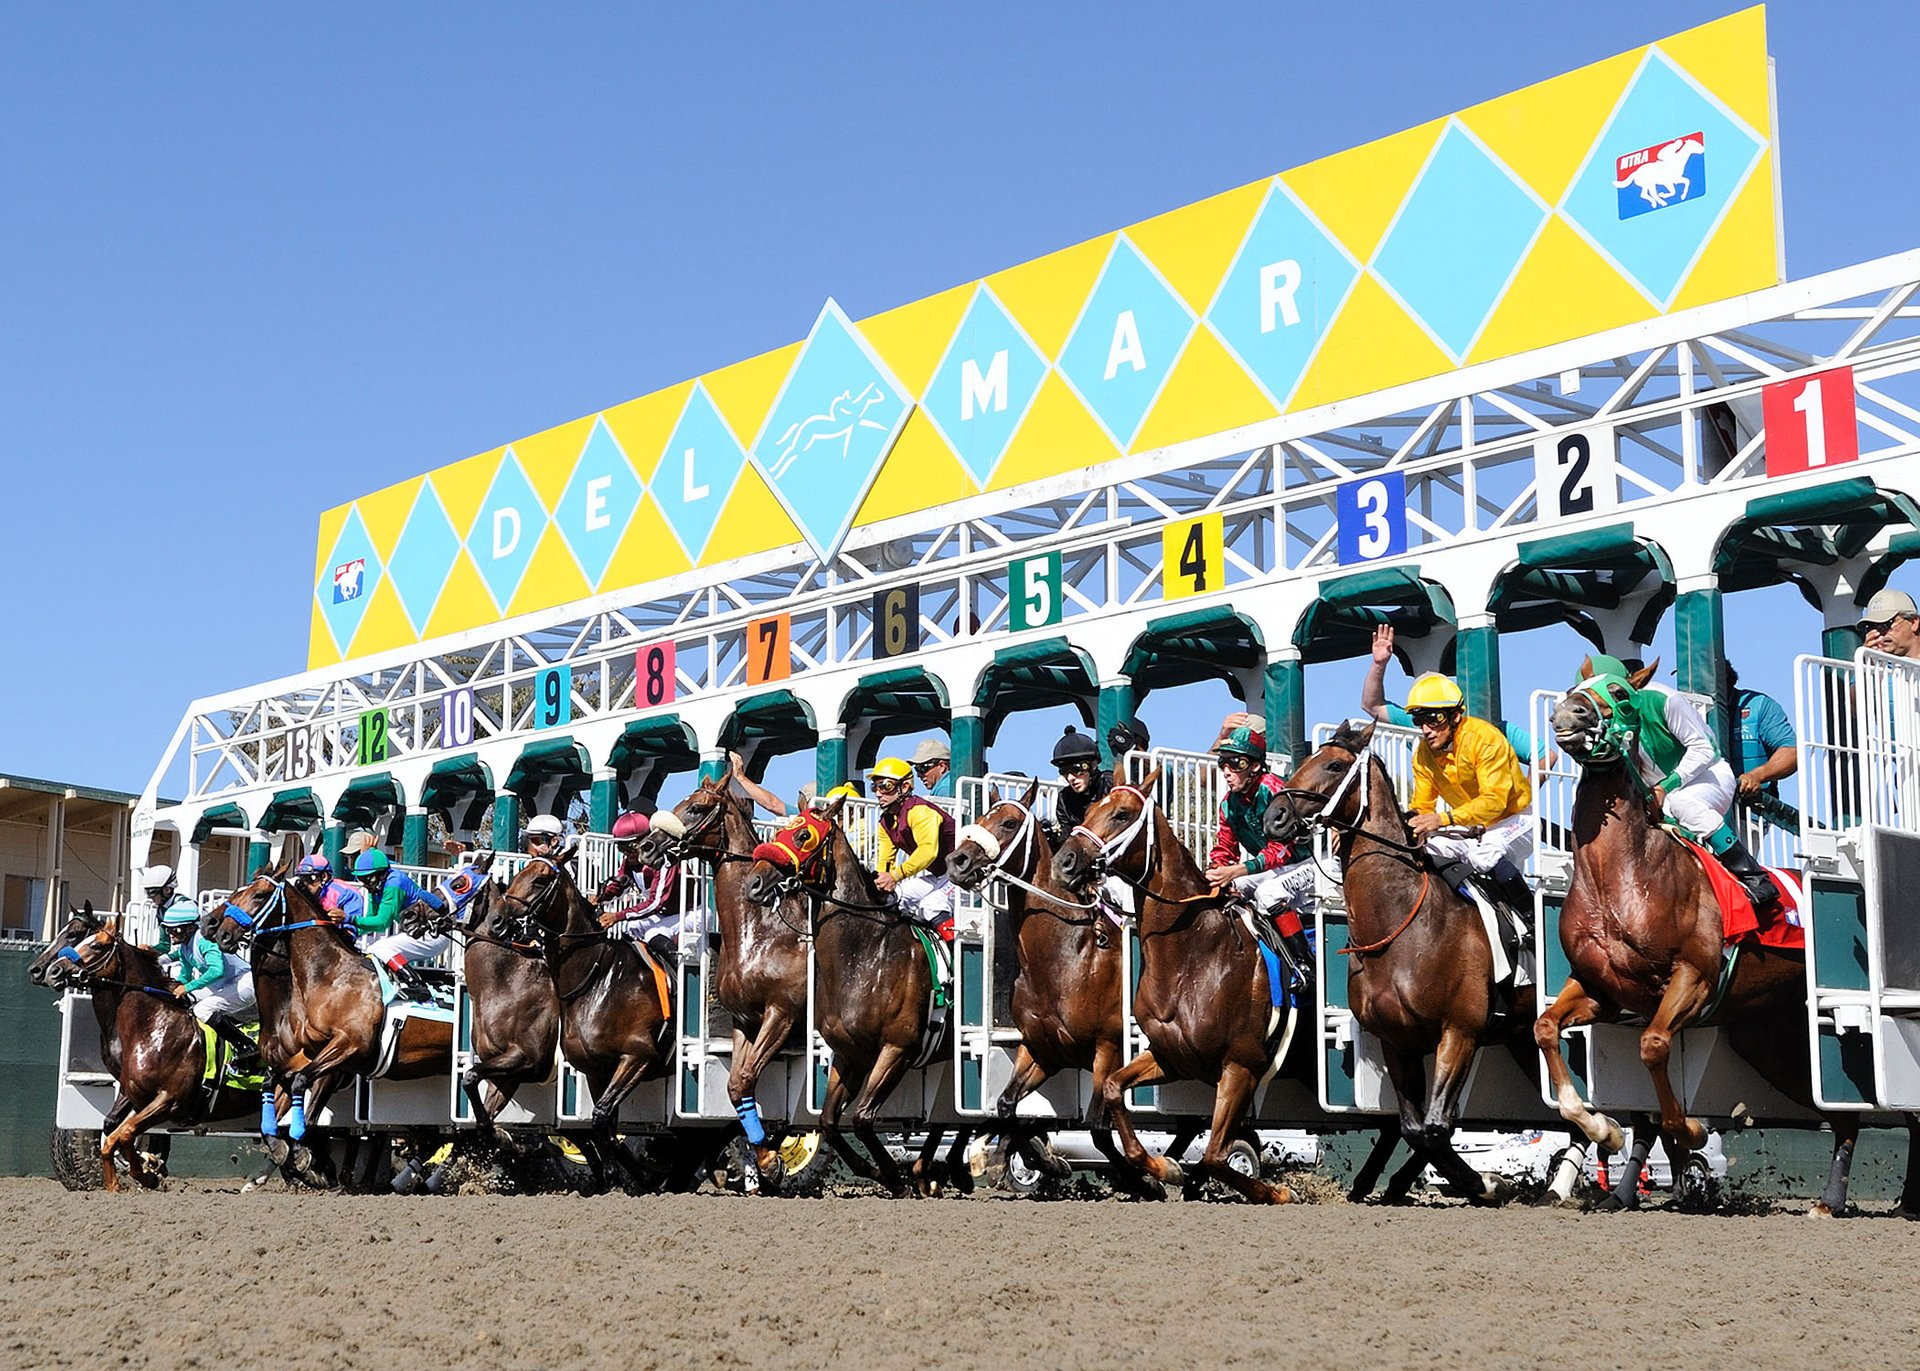 Del Mar Racing Season in San Diego - Best Season 2019